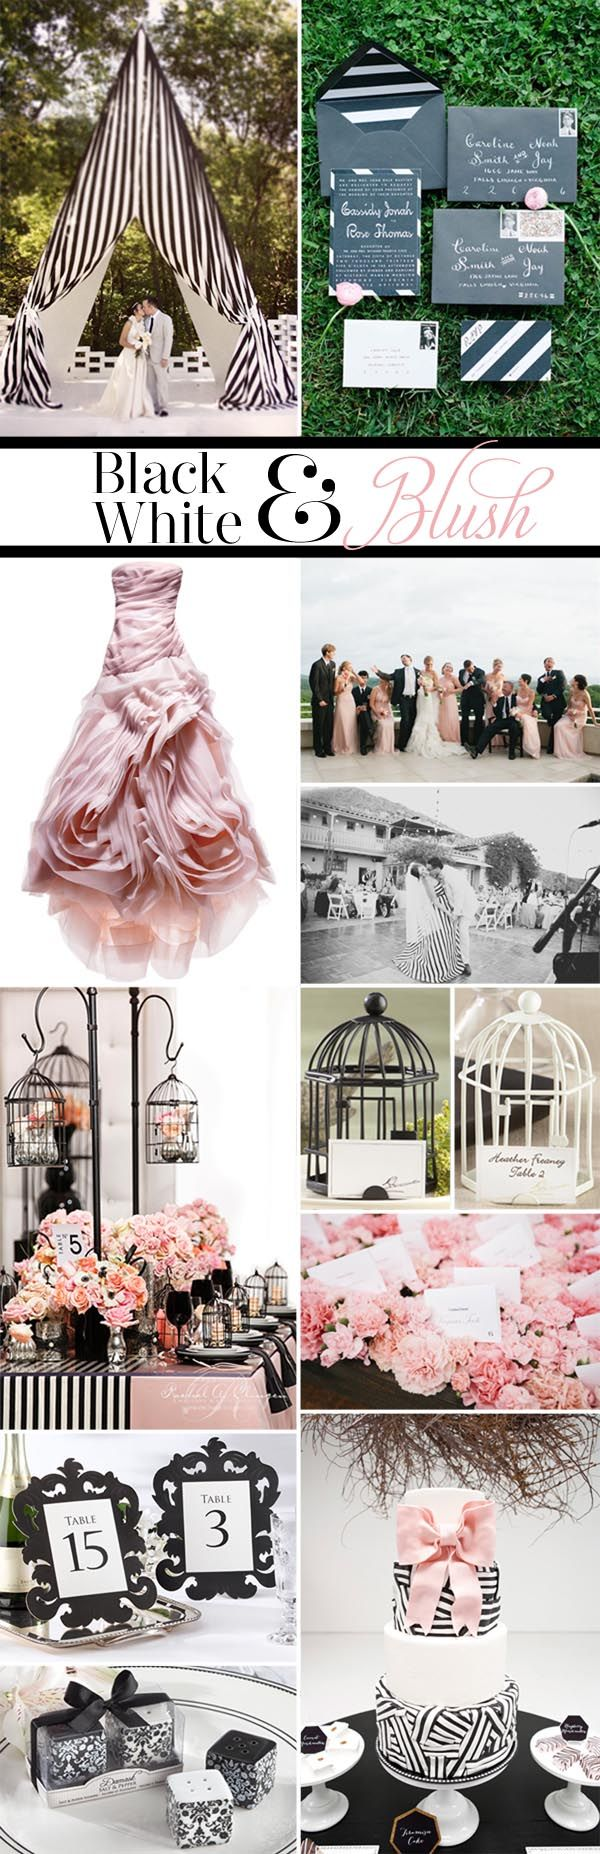 On the Blog: Inspiration Black, White & Blush